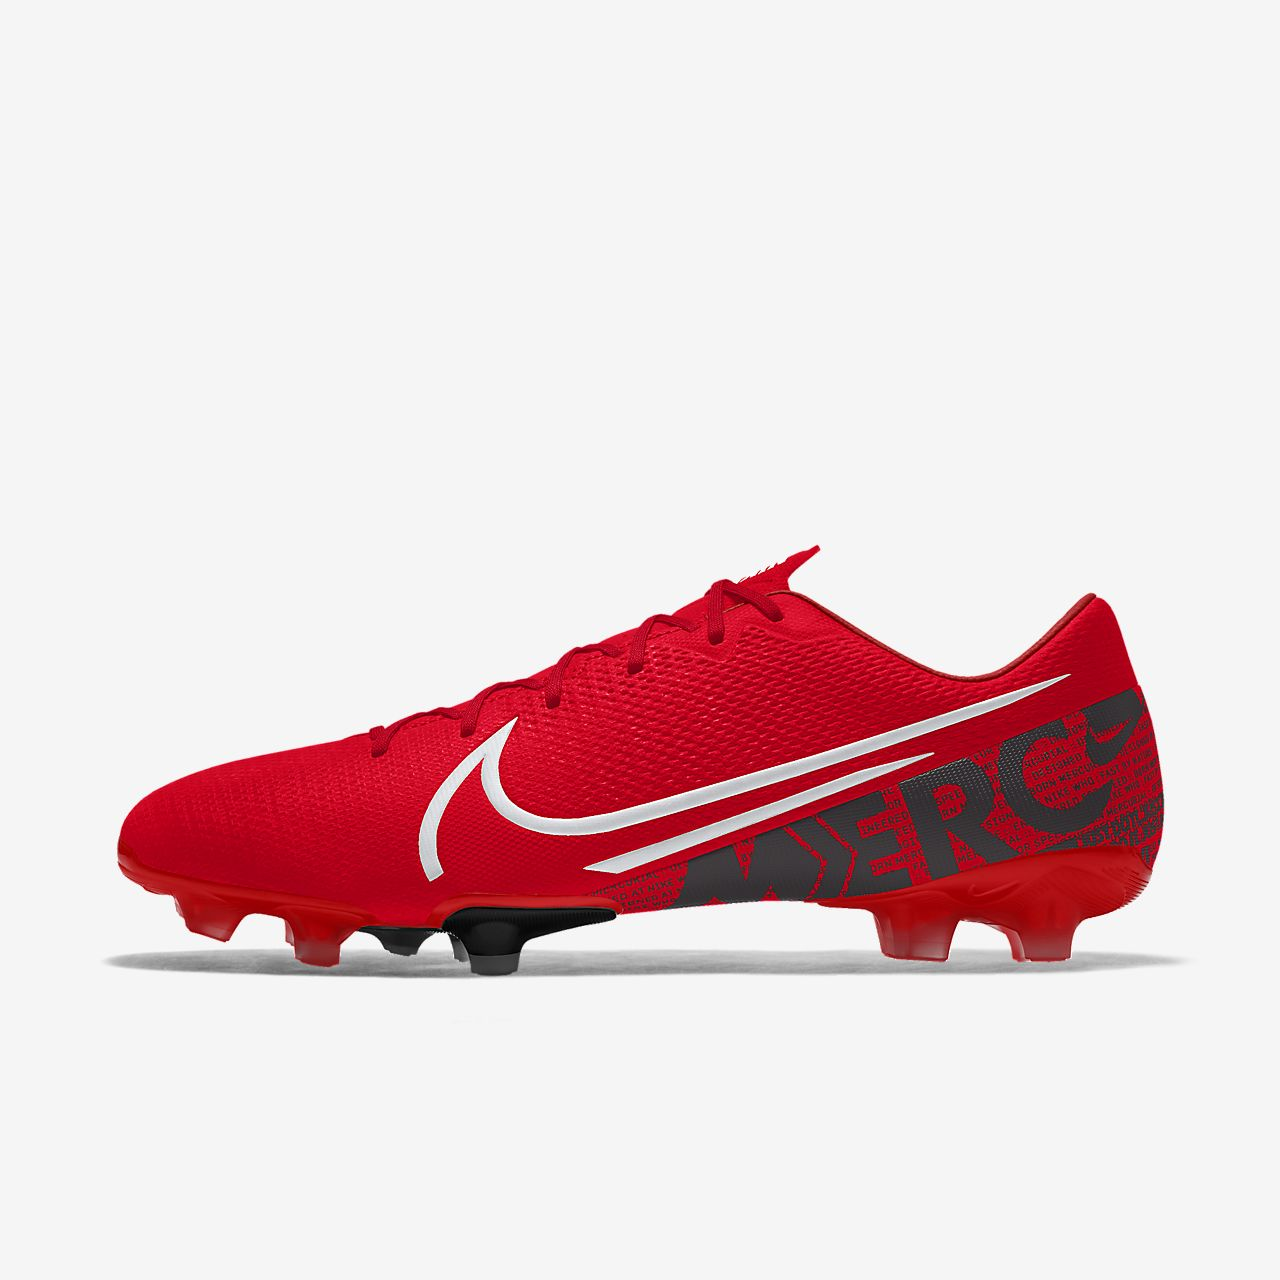 Nike Mercurial Vapor 13 Academy FG By You Custom Firm-Ground Football Boot